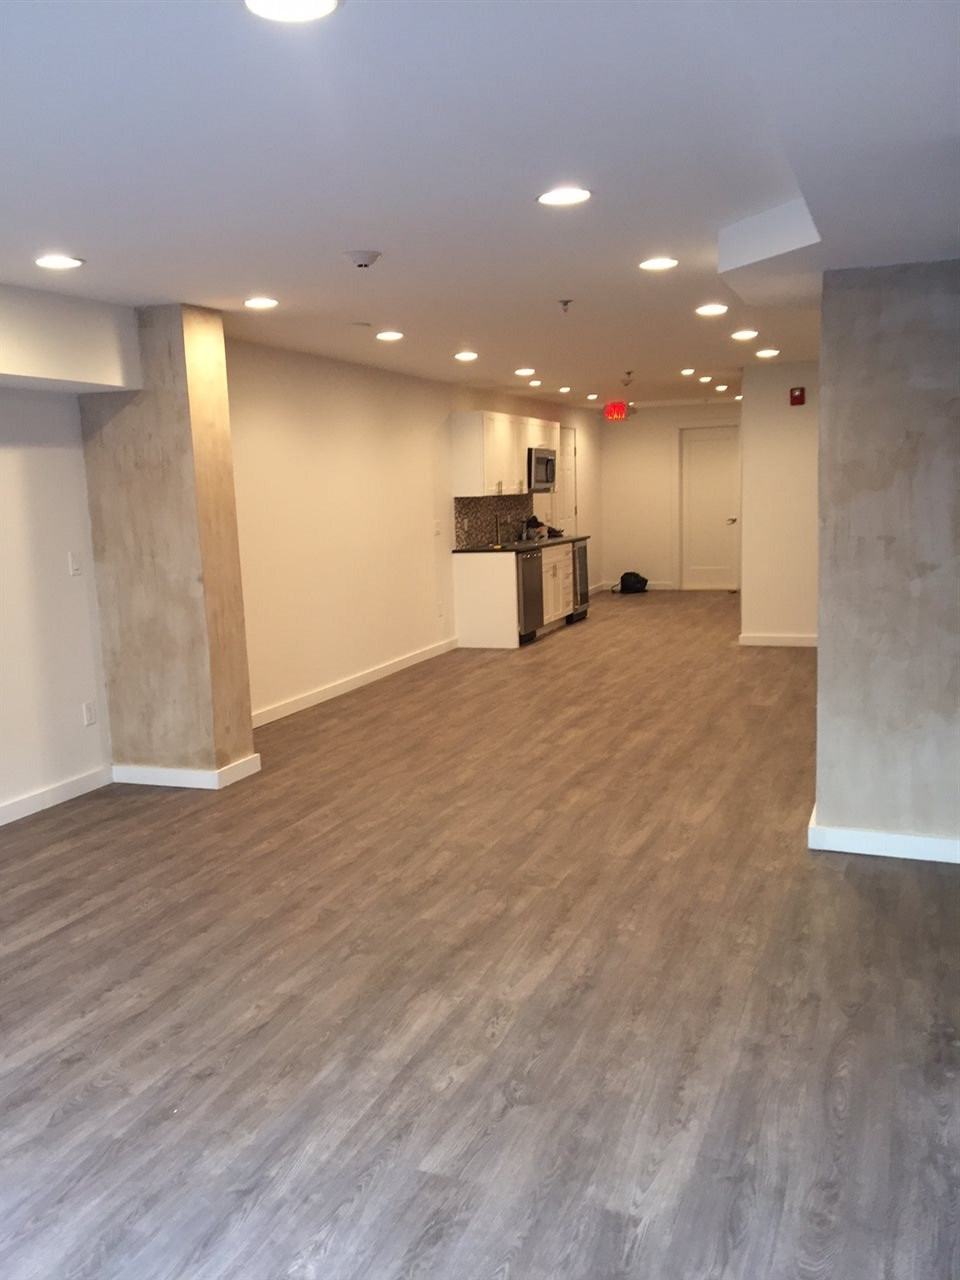 706 WASHINGTON ST LL, Hoboken, NJ 07030